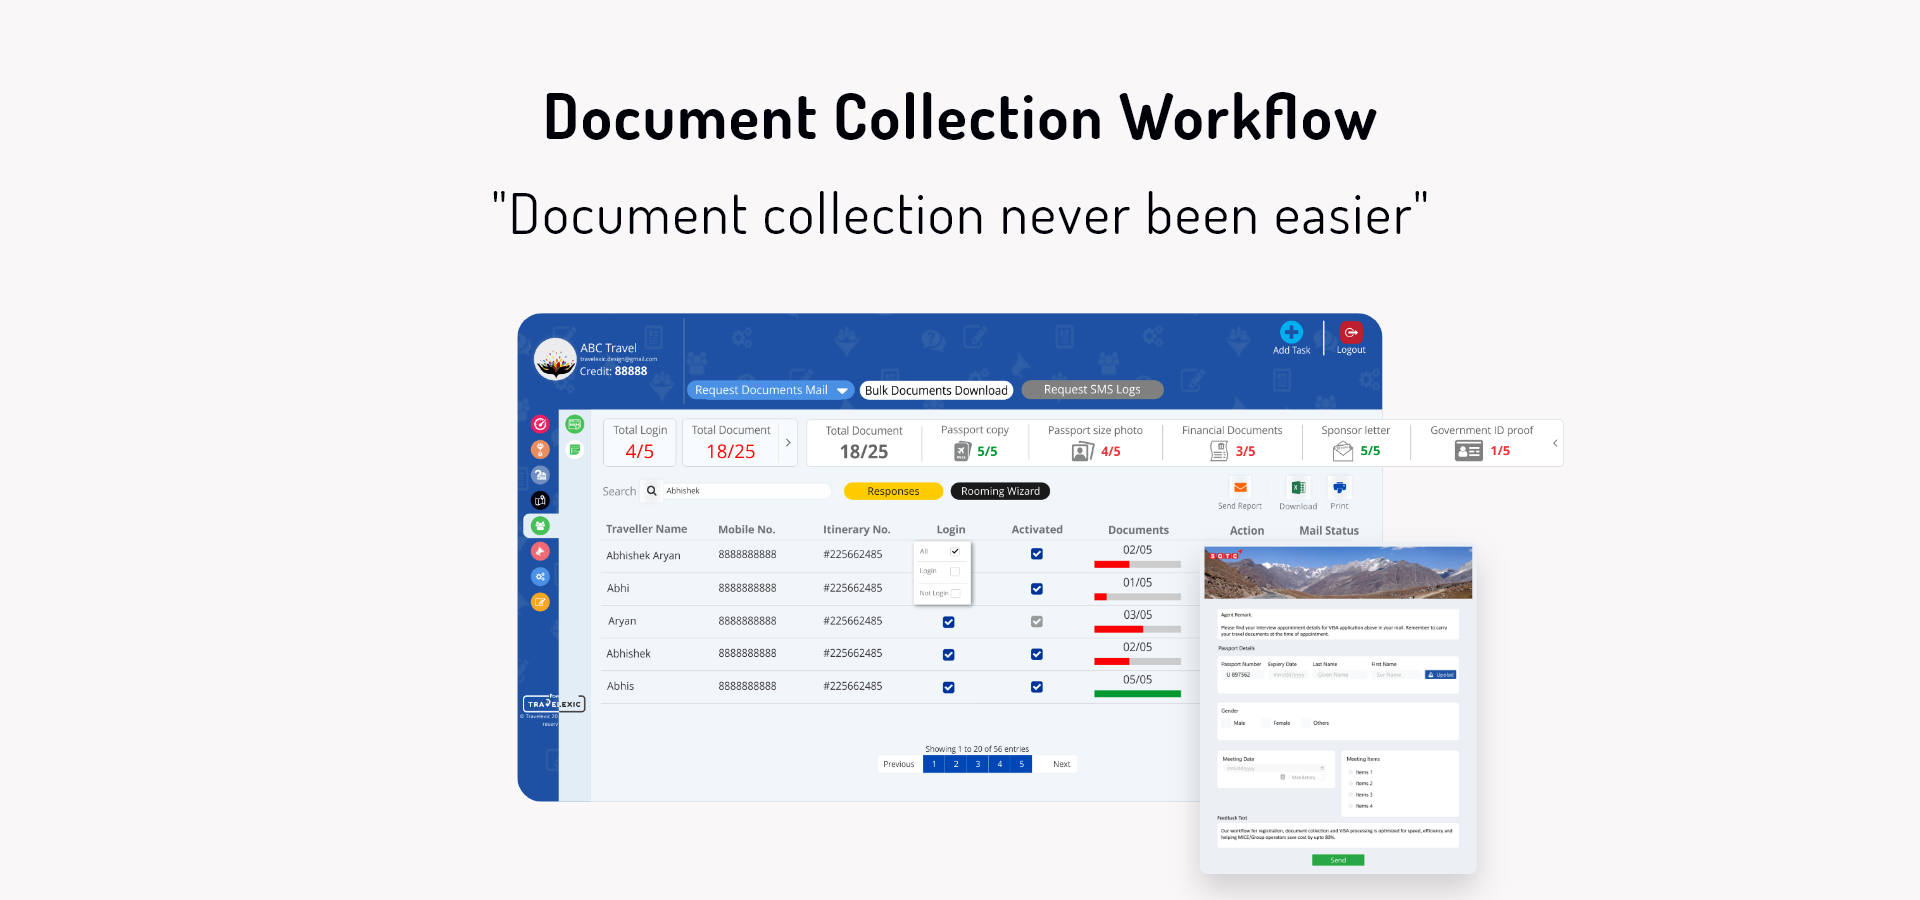 Document Collection Workflow